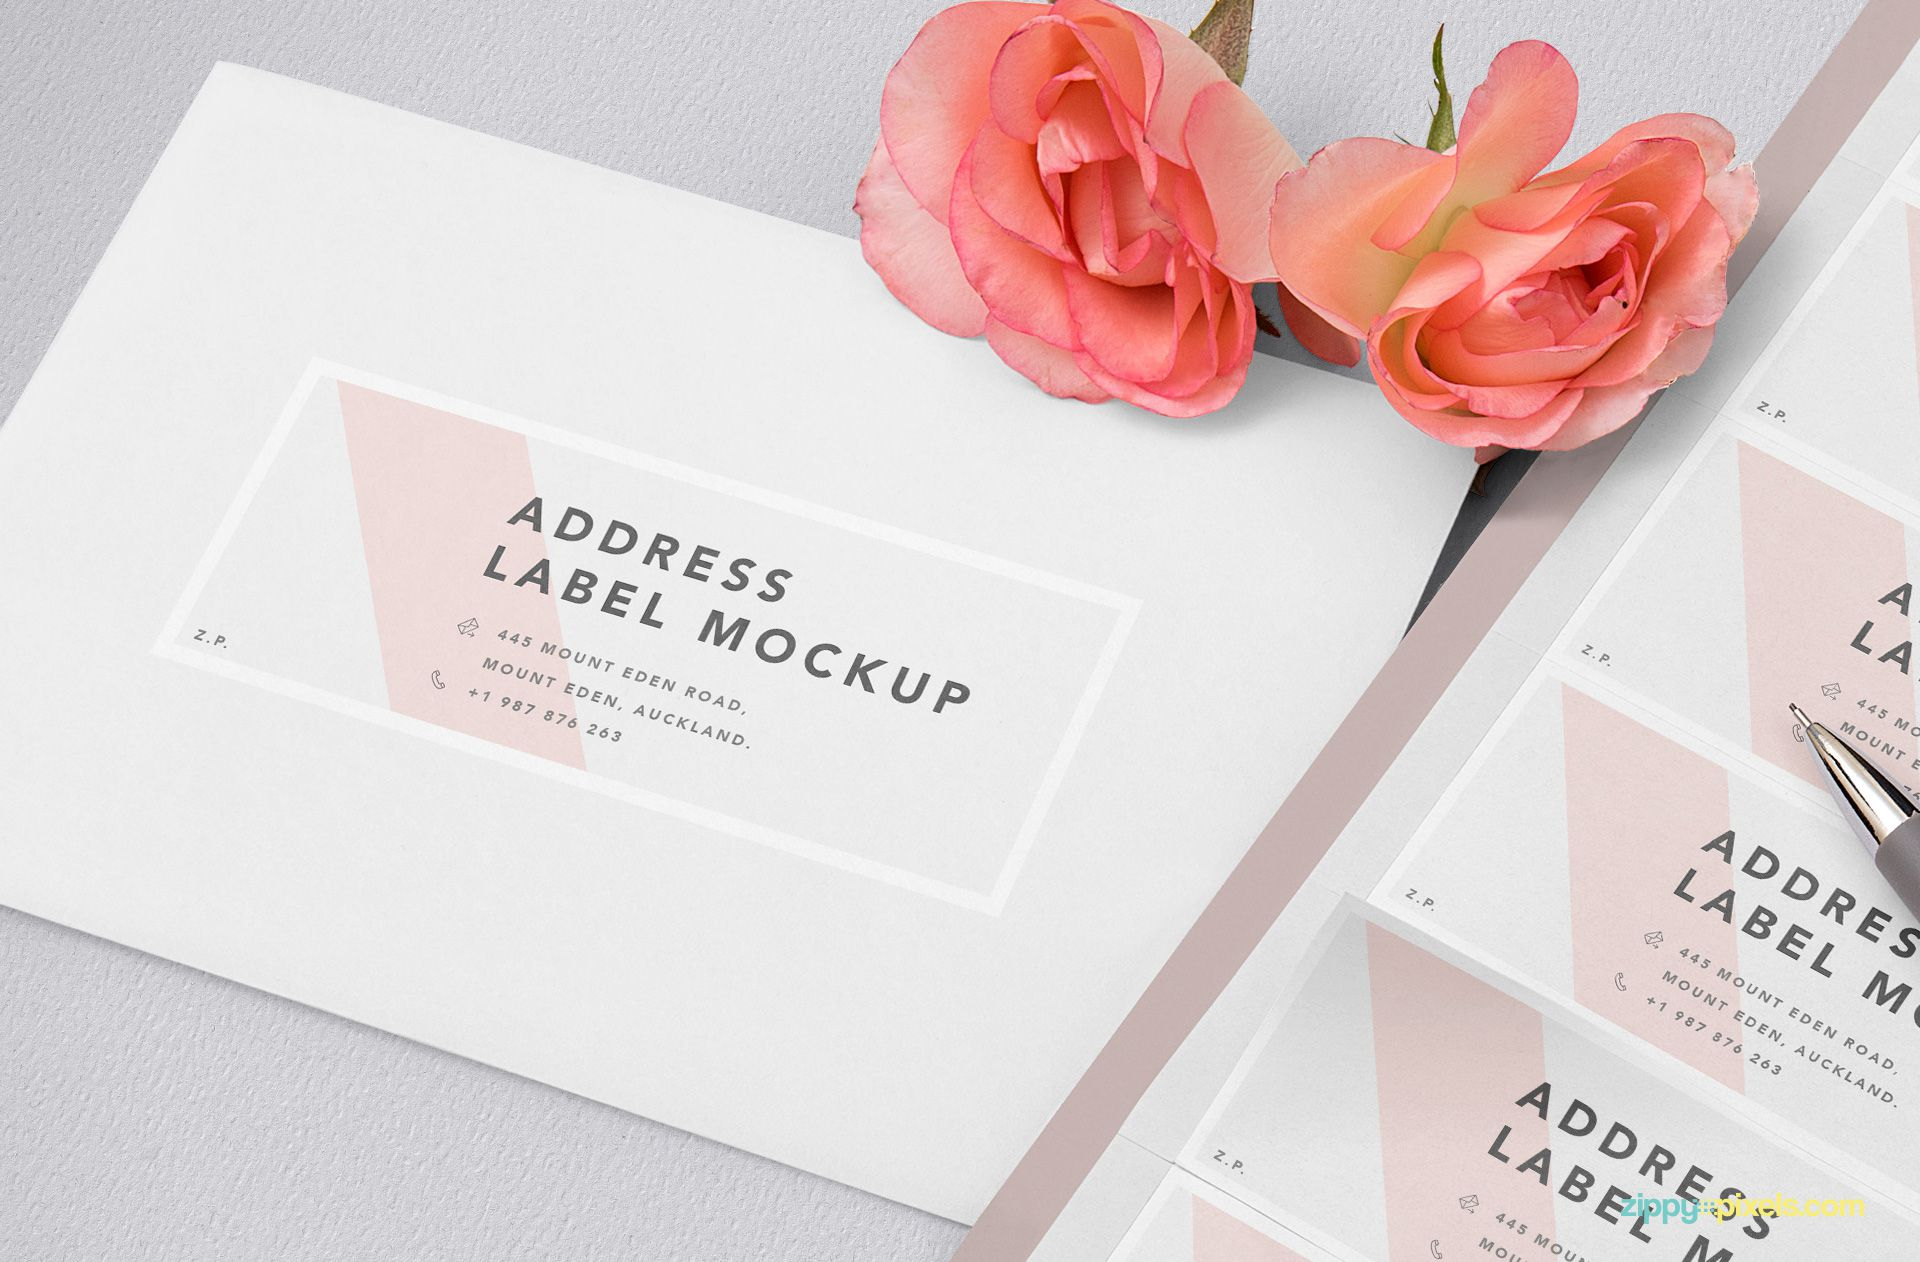 Invitation card mockup with address design option.